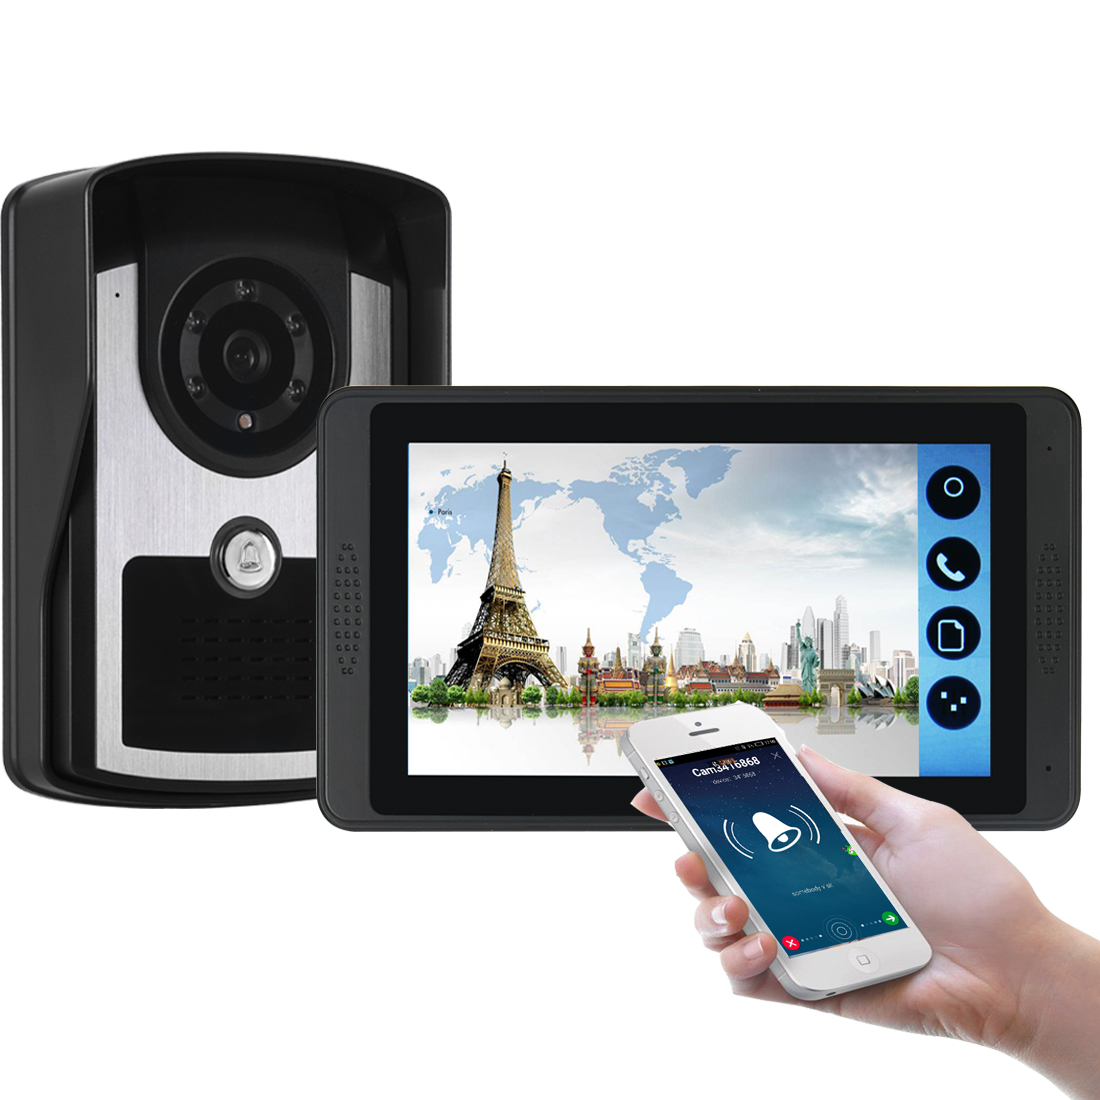 SmartYIBA 7inch Wired Video Door Phone HD Outdoor Camera Mobile App WIFI Remote View And Unlock Support IOS/Android Rainproof